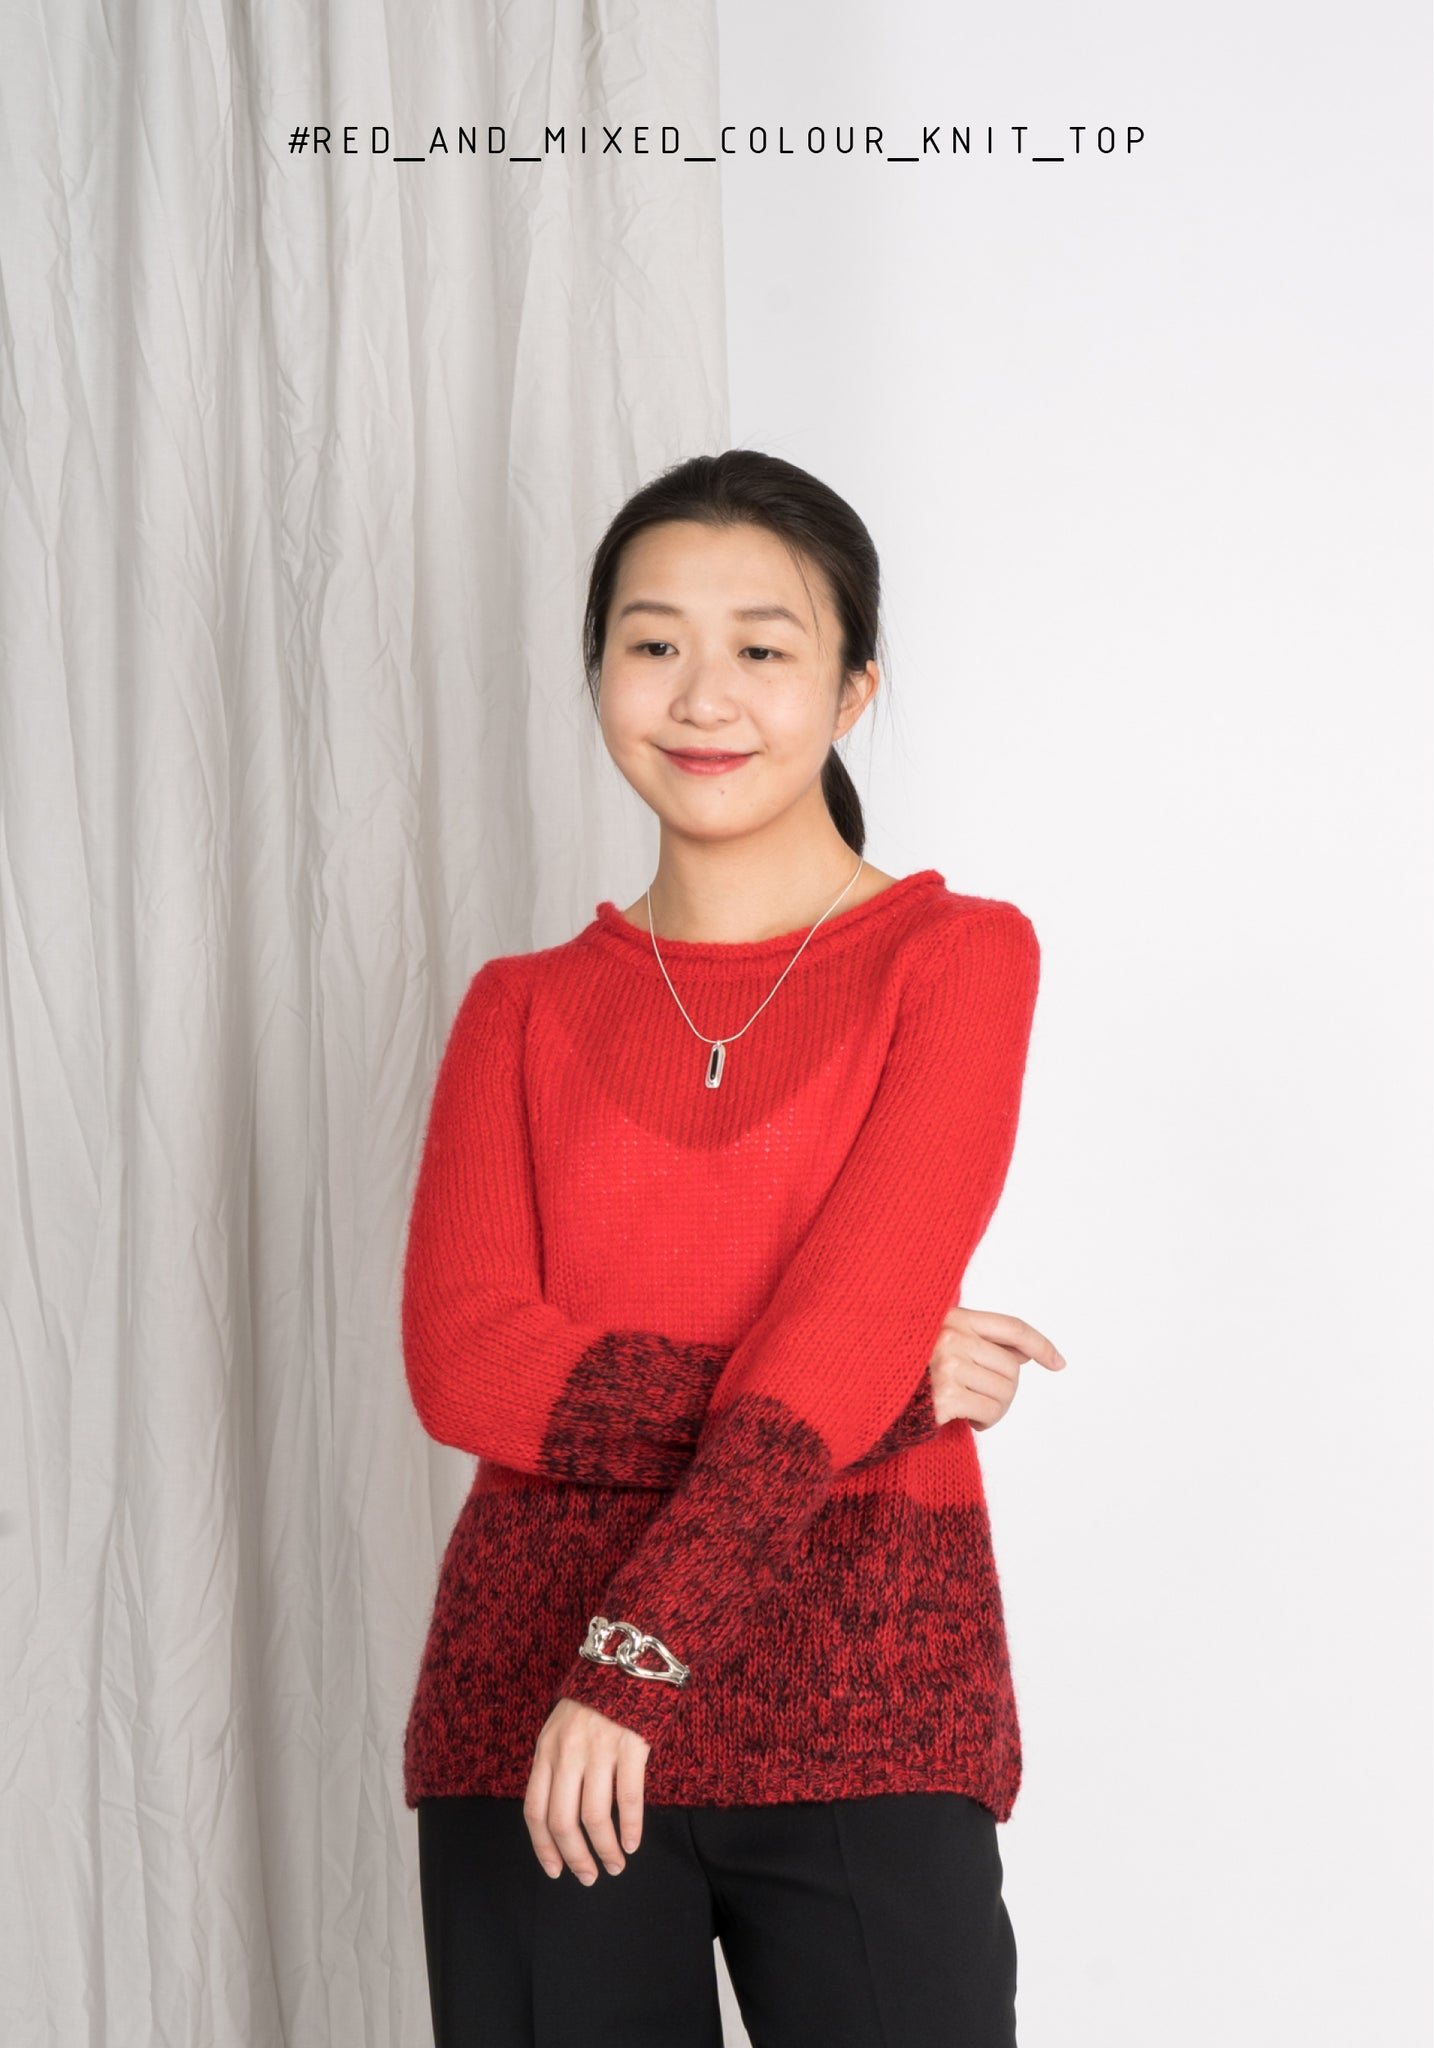 Red and Mixed Colour Knit Top